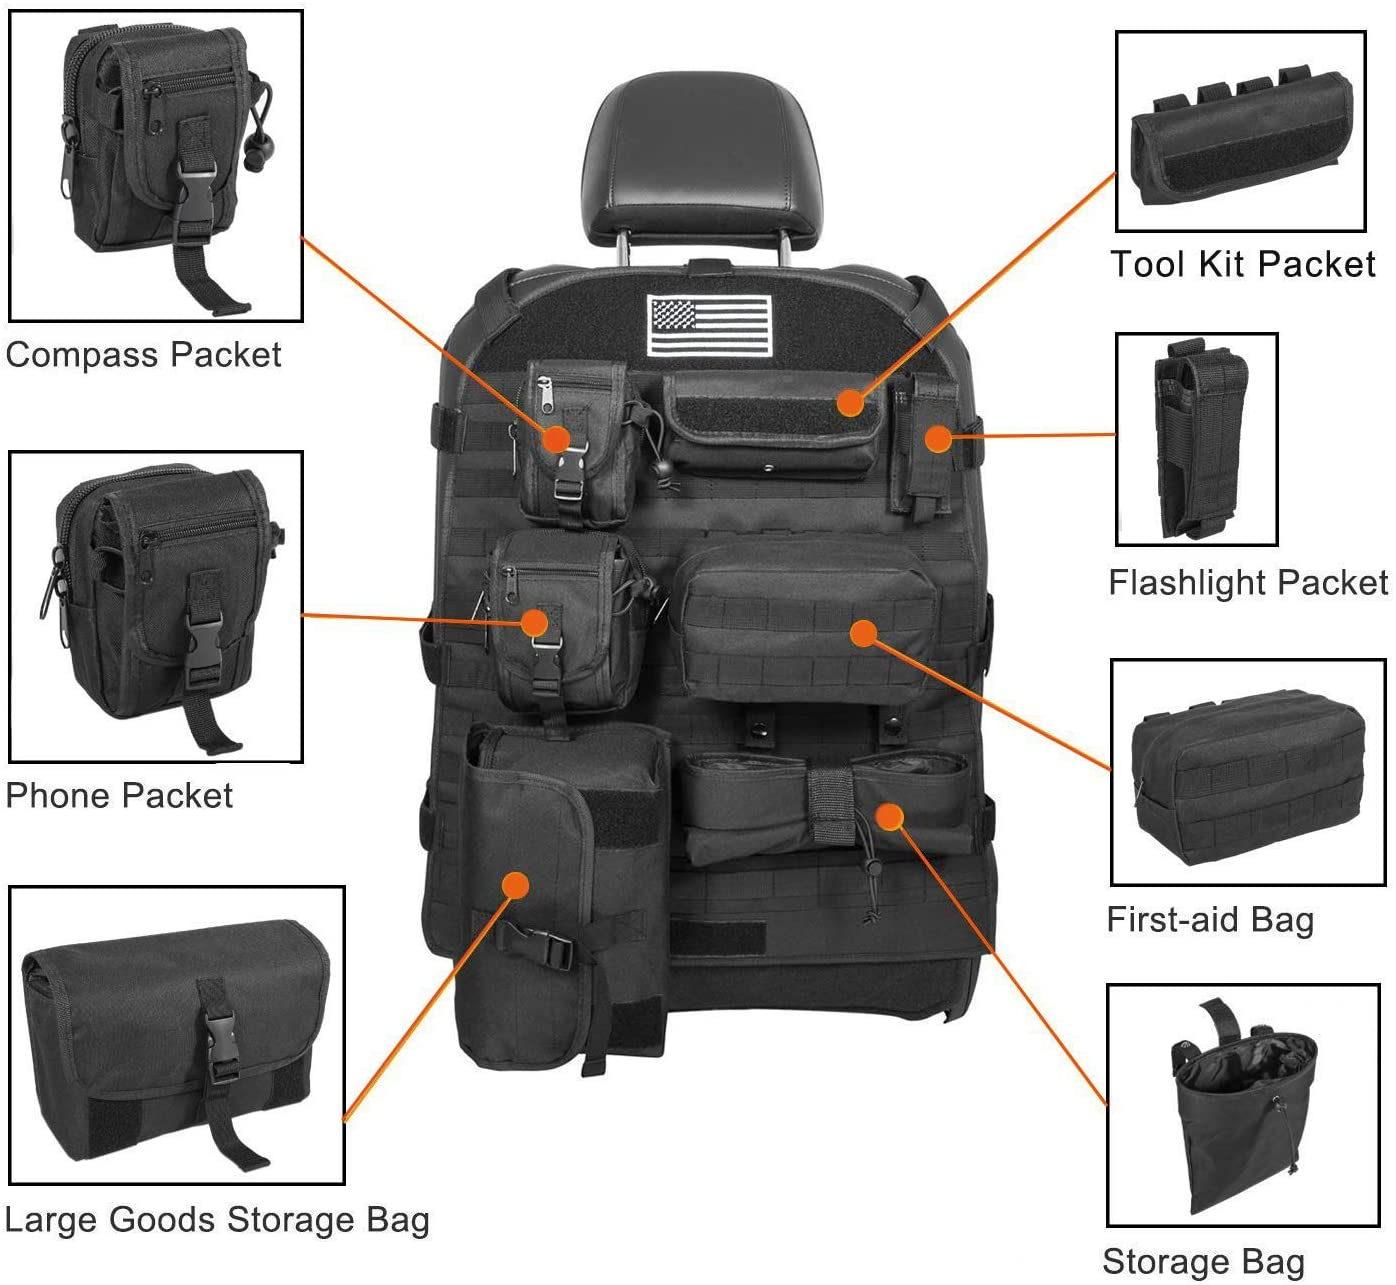 E-cowlboy Universal Front Seat Cover Storage Bags Muti-Compartments Holder Molle Pouches Stuff Organizer for 1956-2020 Jeep Wrangler JK JL CJ YJ LJ Ford Toyota Jeep Cherokee and More